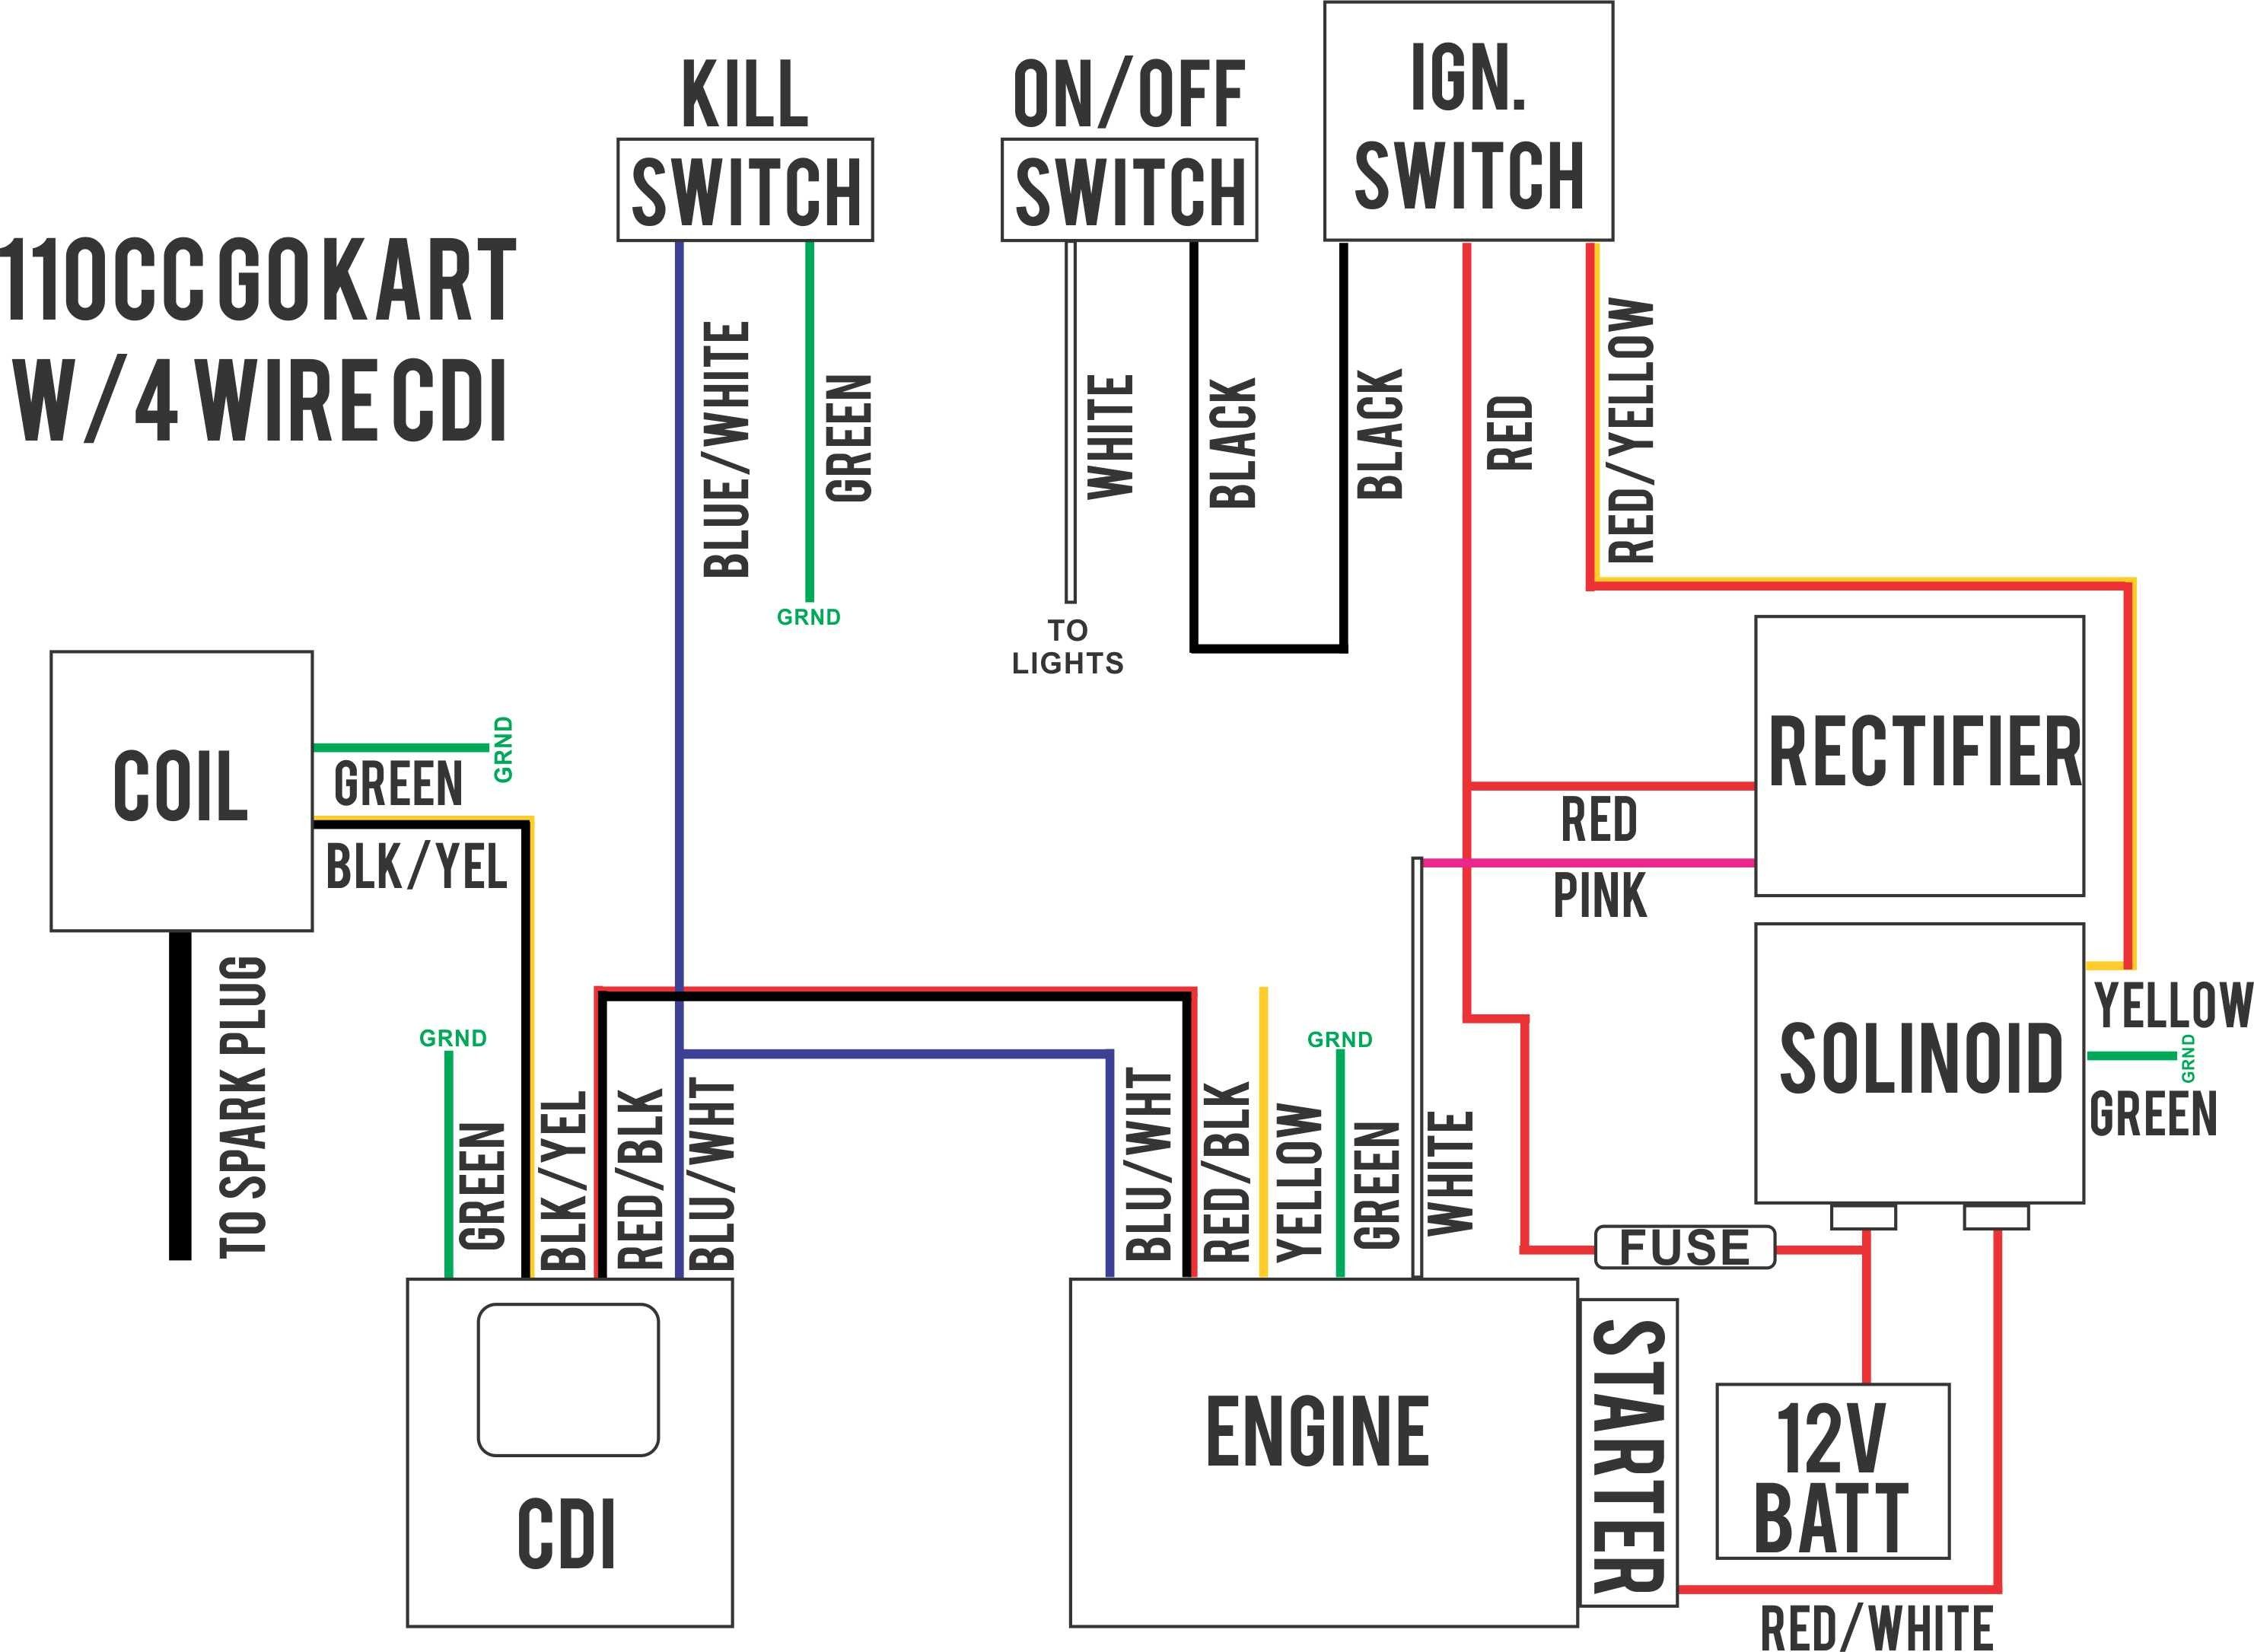 hight resolution of wiring diagram of motor bike blog wiring diagram dirt bike wiring diagram wiring diagram yer 90cc